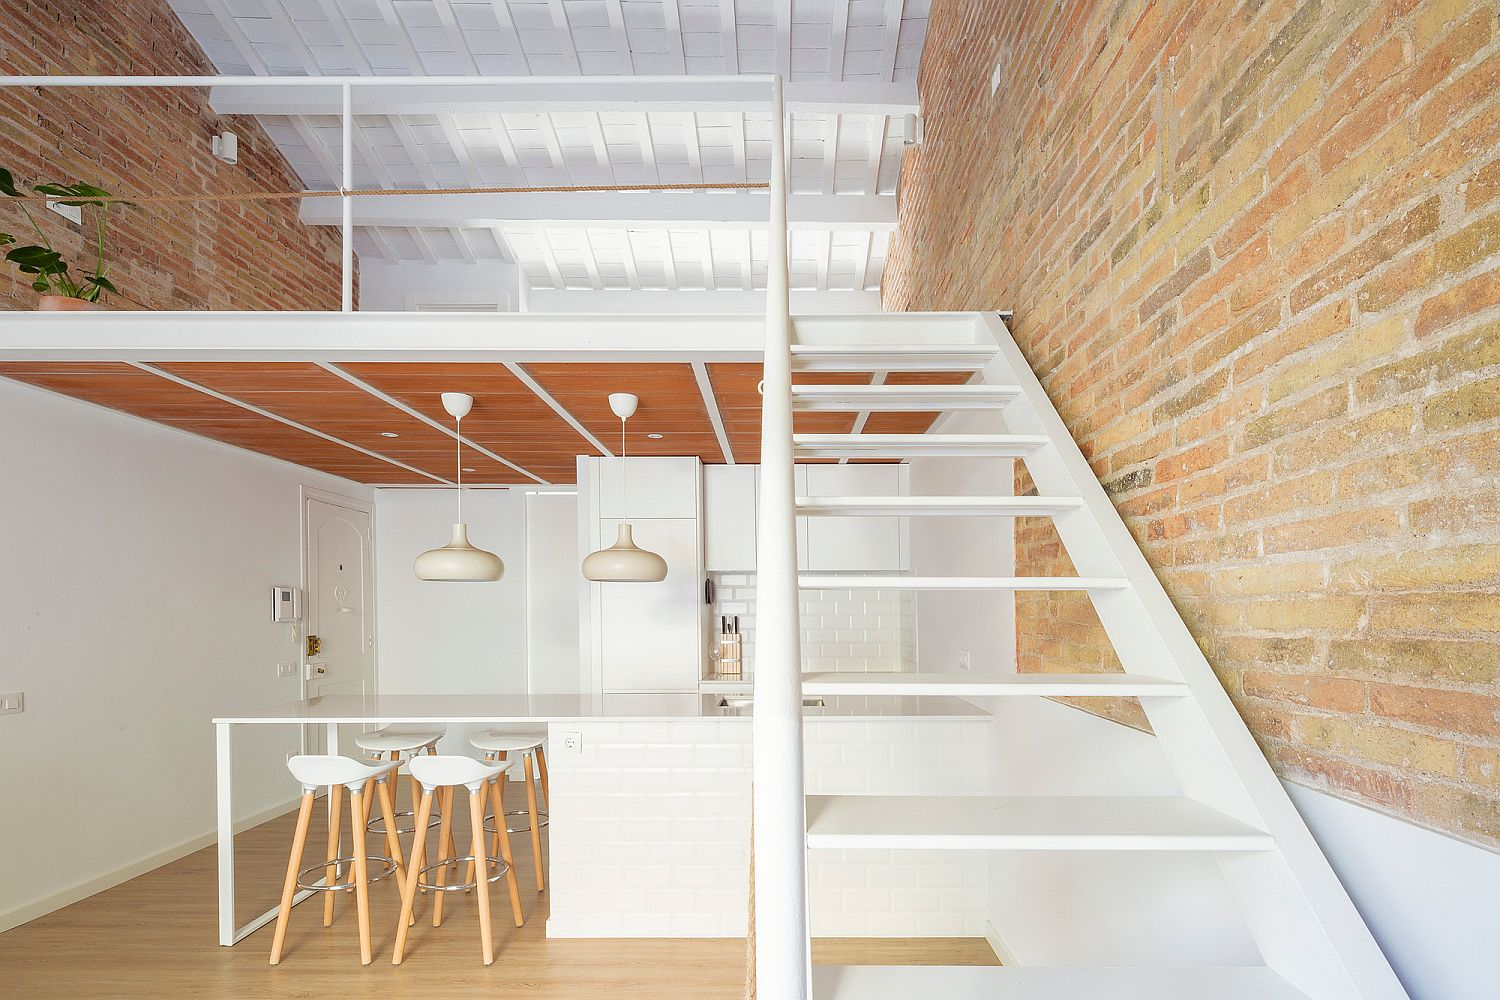 Tiny Barcelona Home Refurbishment in White, Brick and Wood with Mezzanine Level